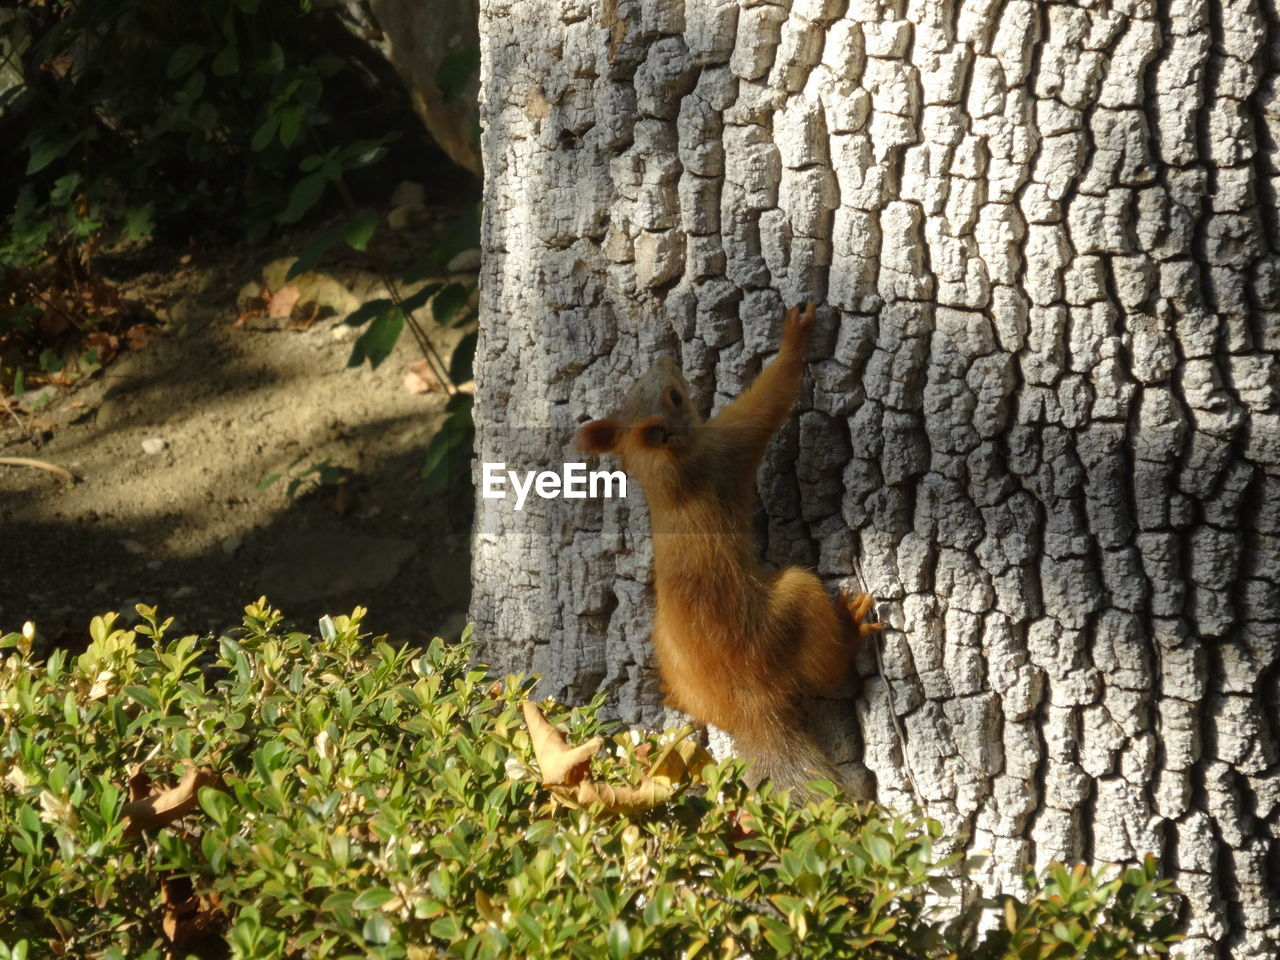 animal themes, animal, one animal, animal wildlife, mammal, animals in the wild, vertebrate, rodent, no people, squirrel, nature, day, tree trunk, trunk, plant, tree, outdoors, plant part, side view, tail